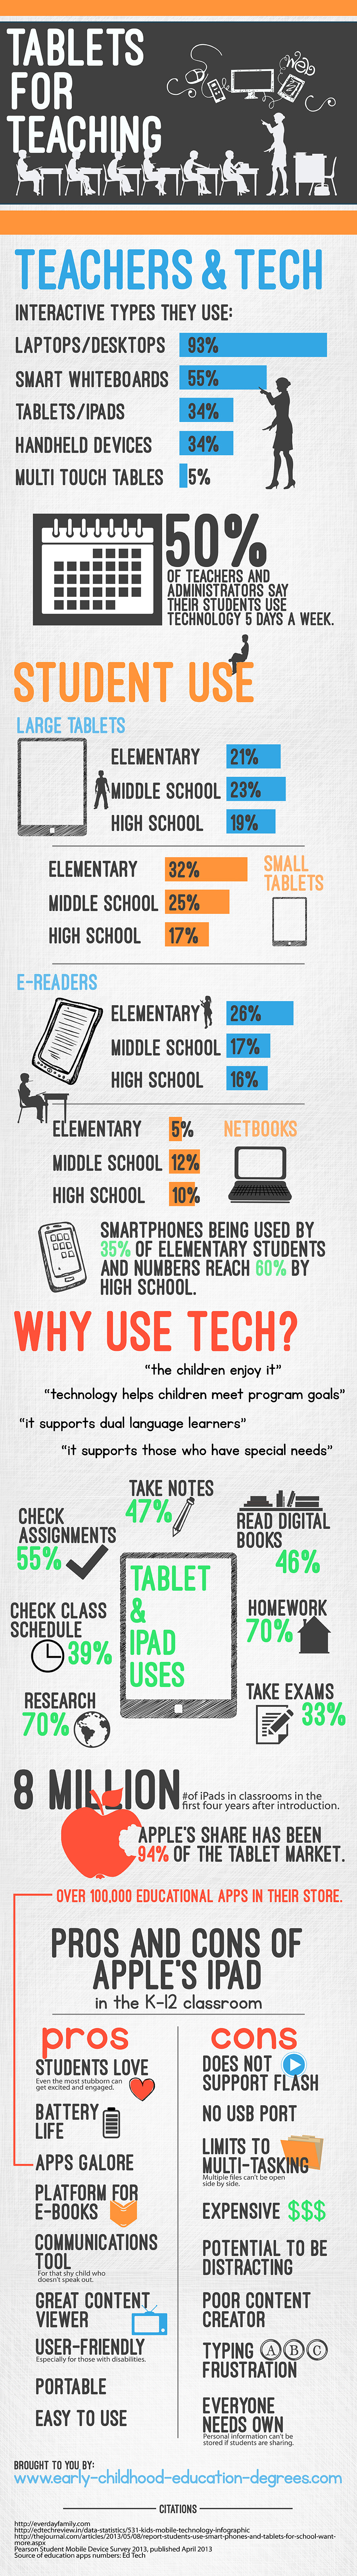 Tablets-for-Teaching-Kids-Infographic